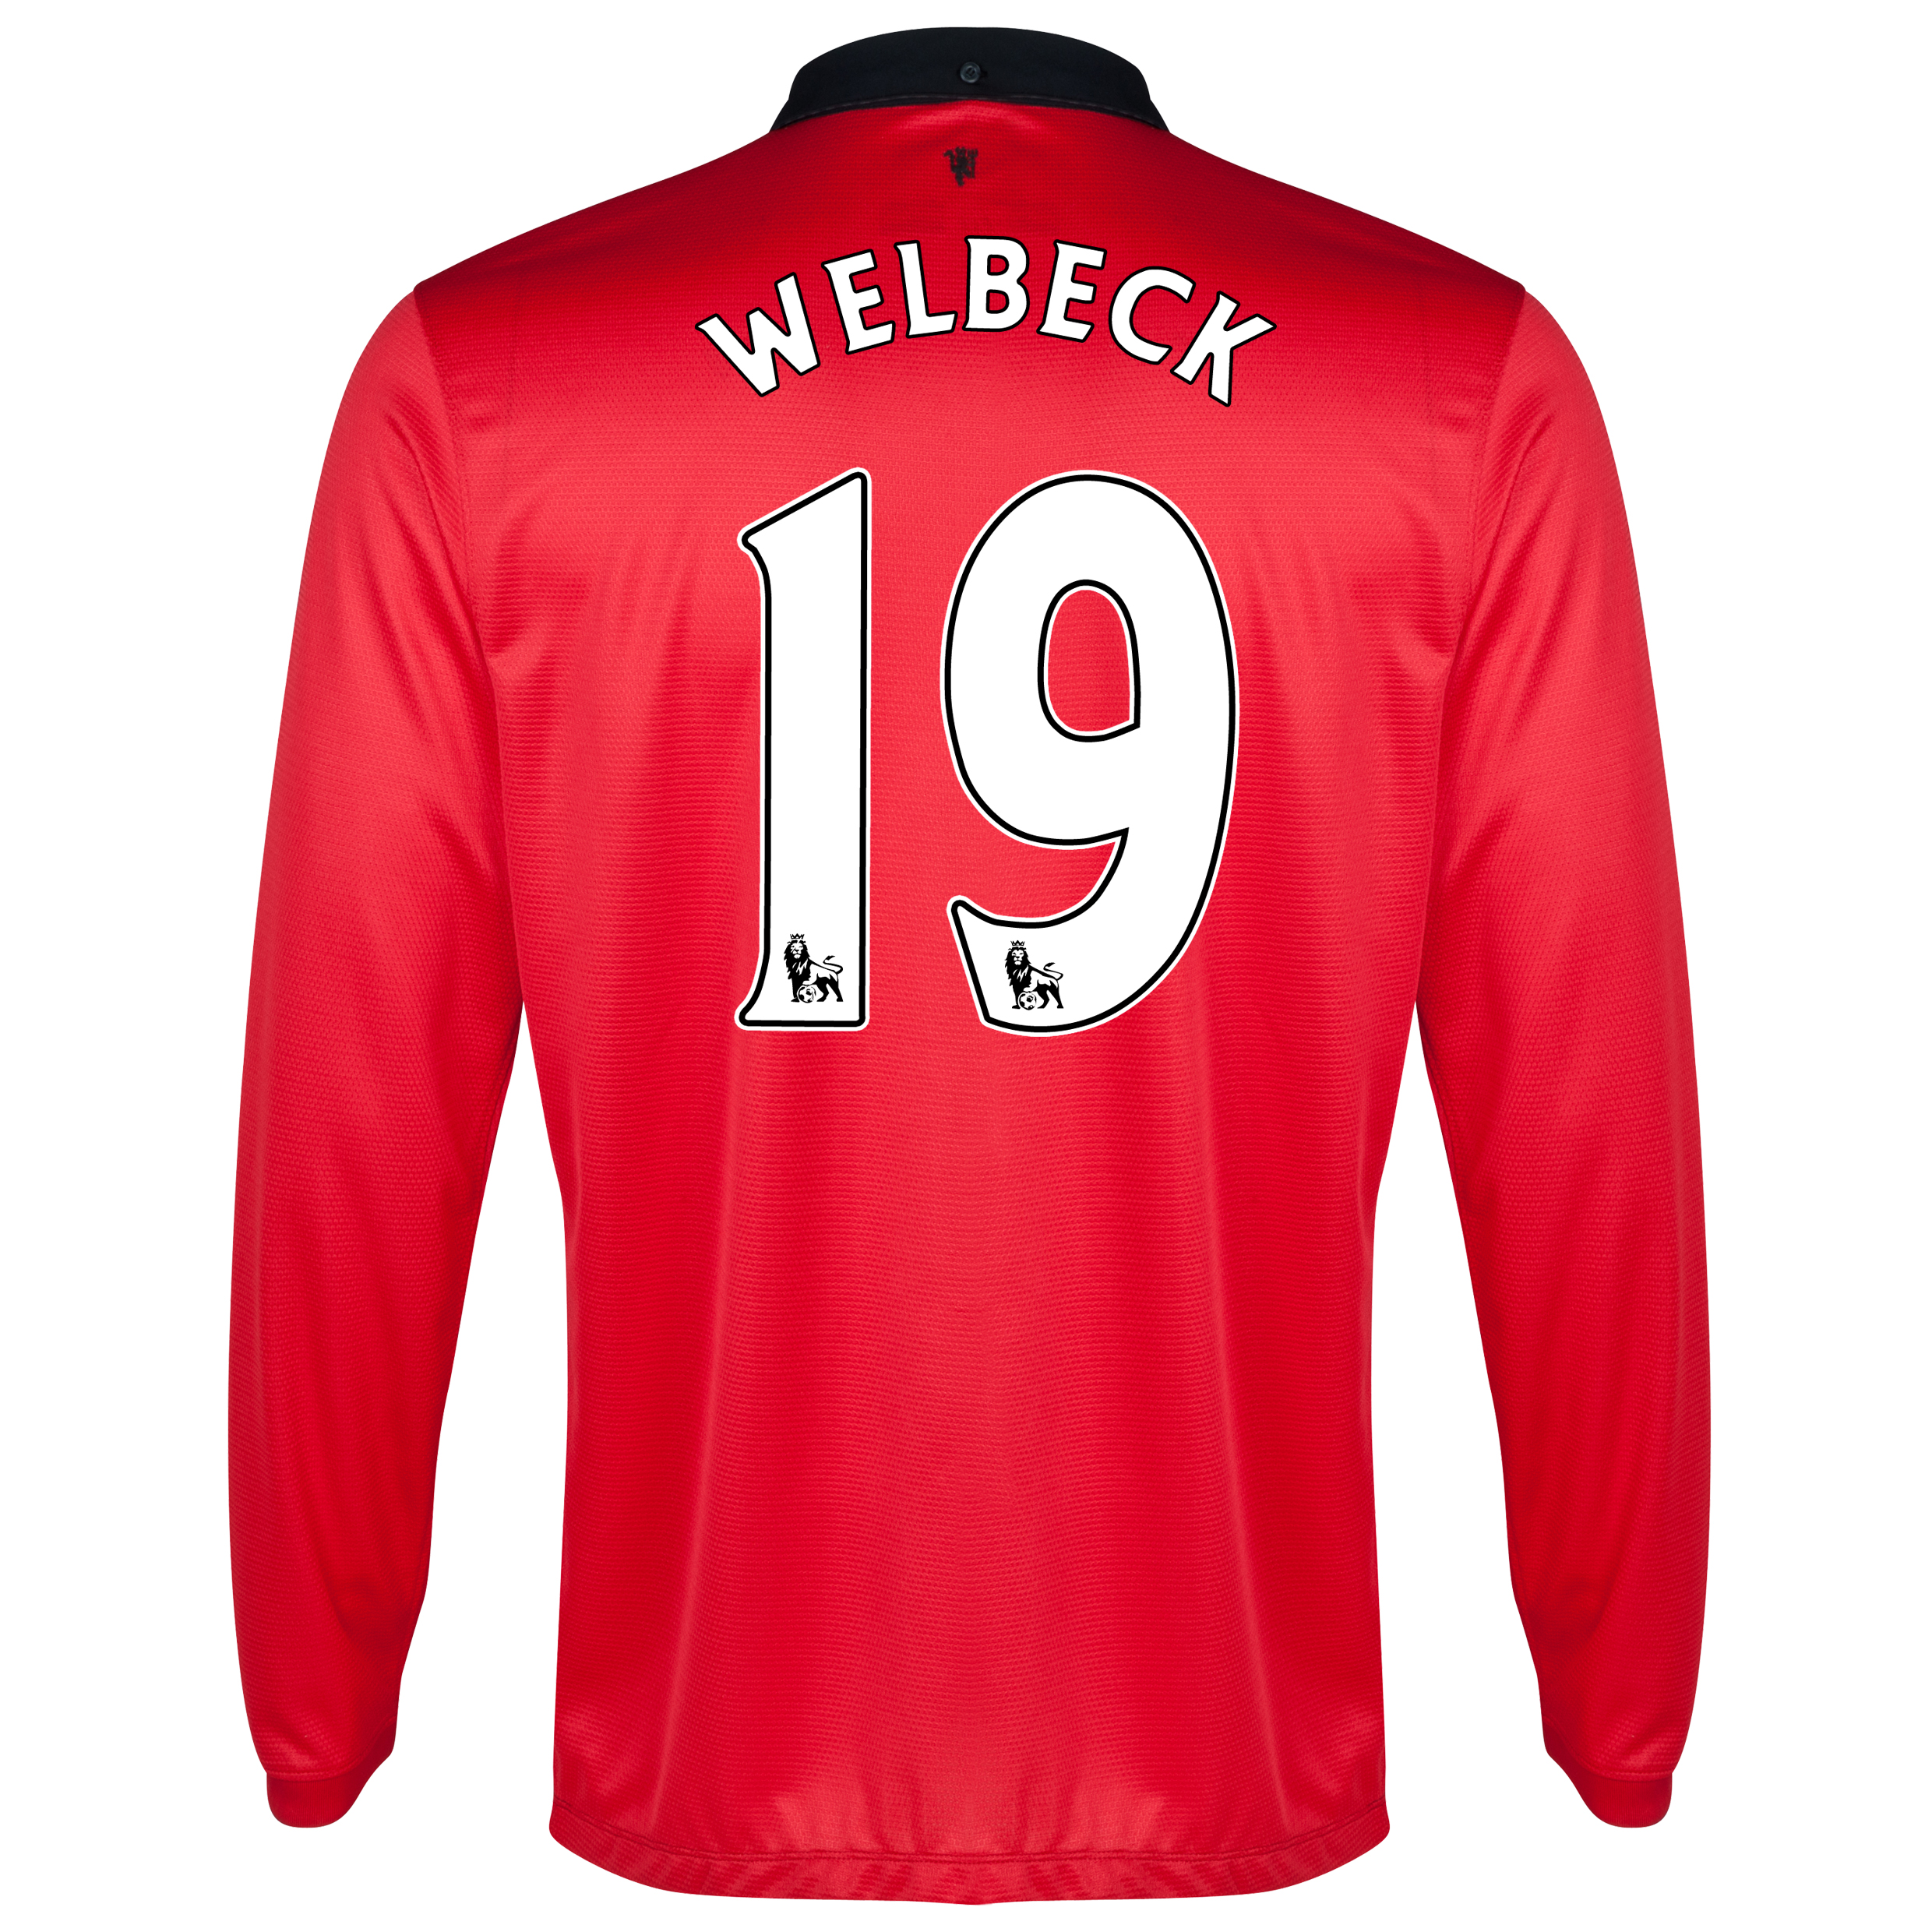 Manchester United Home Shirt 2013/14 - Long Sleeved - Kids with Welbeck 19 printing